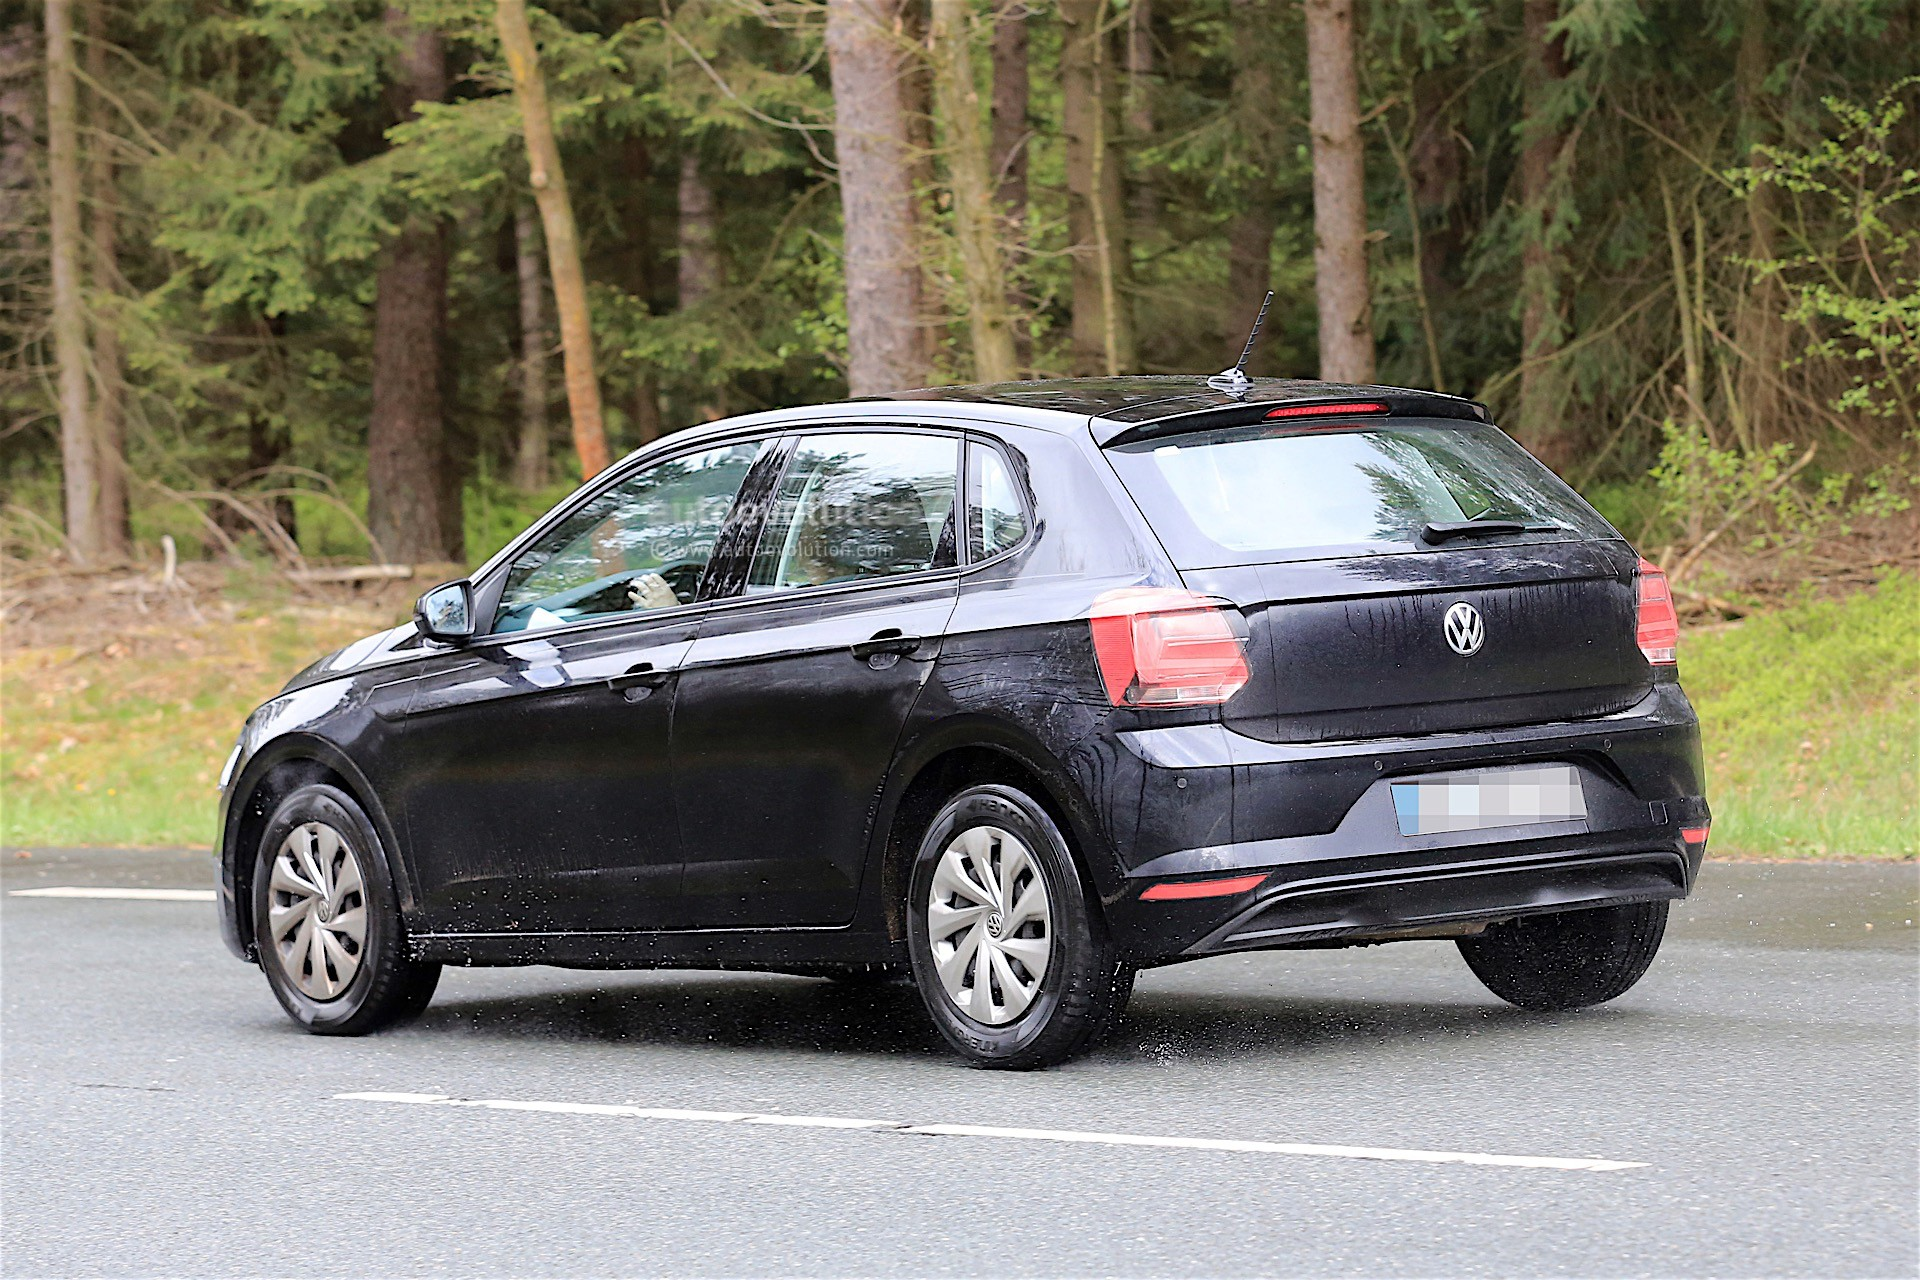 2018 Volkswagen Polo Spied Without Any Camouflage Looks